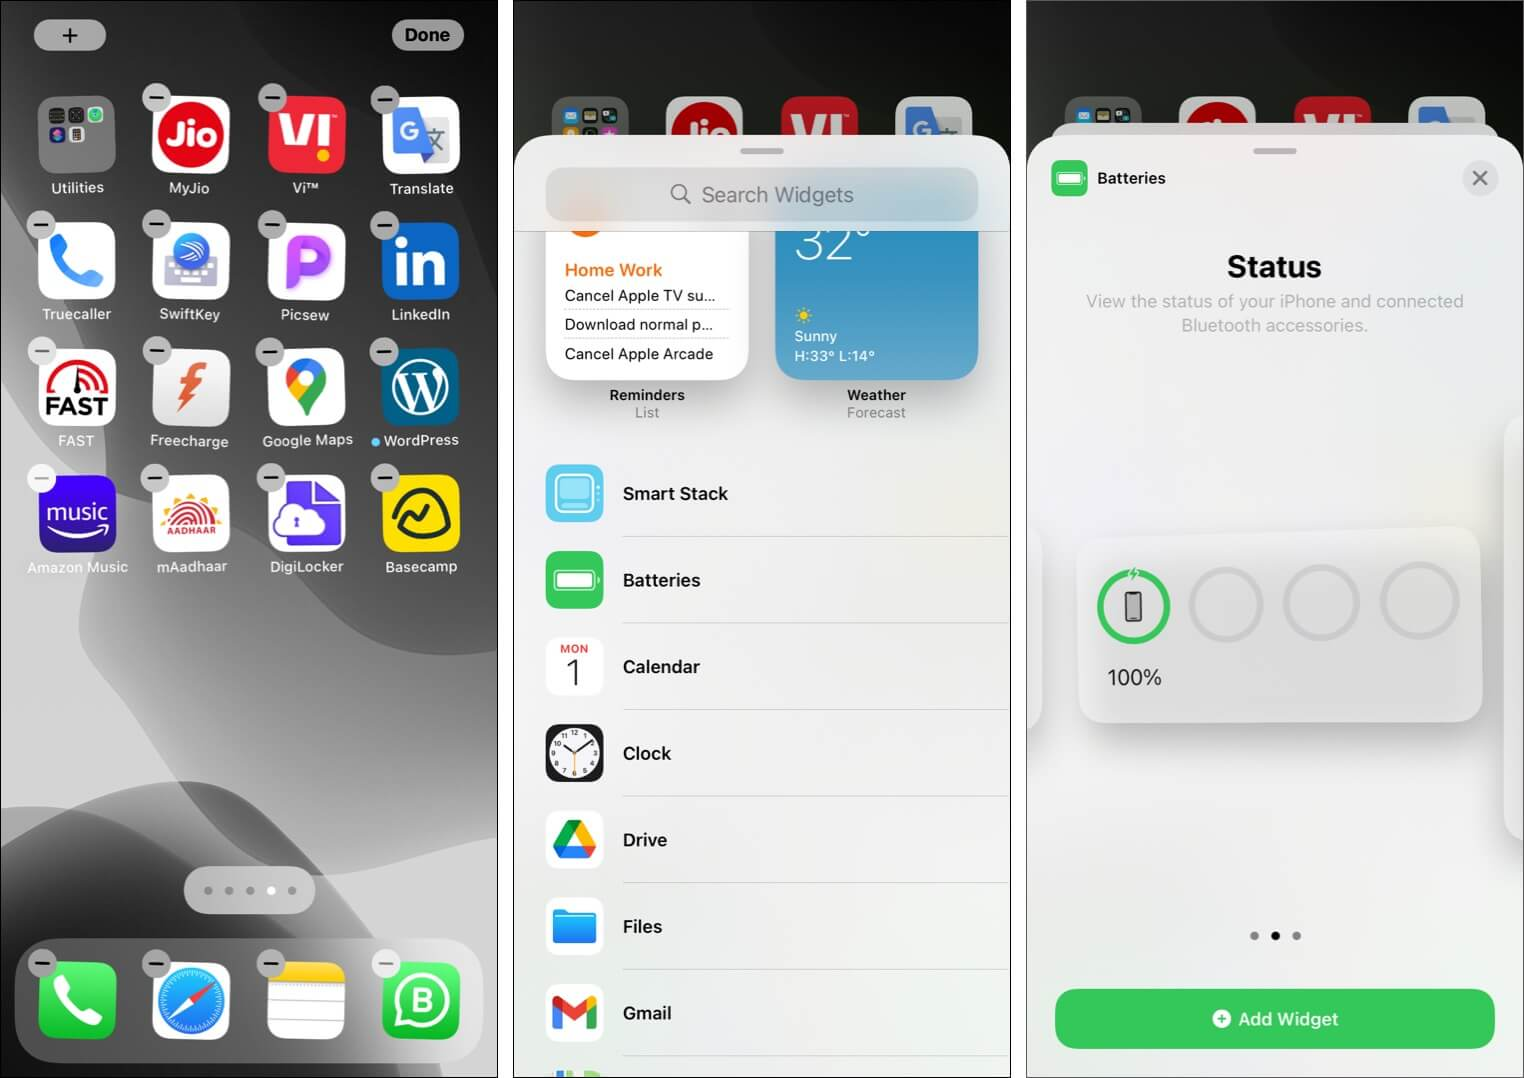 Add widgets to iPhone Home Screen